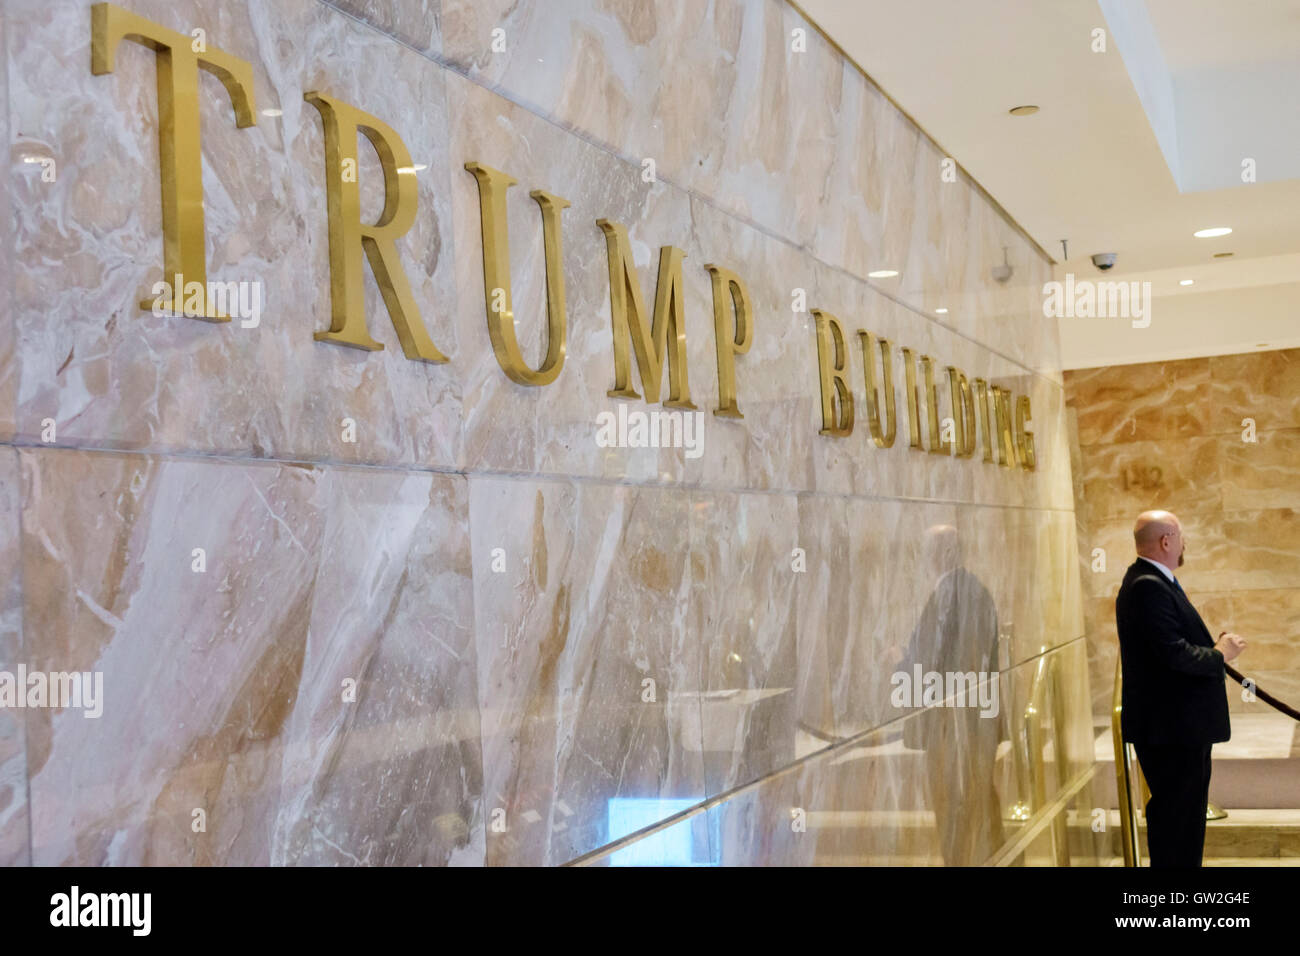 Lower Manhattan New York City NYC NY Financial District Wall Street Trump Building lobby security guard marble sign - Stock Image